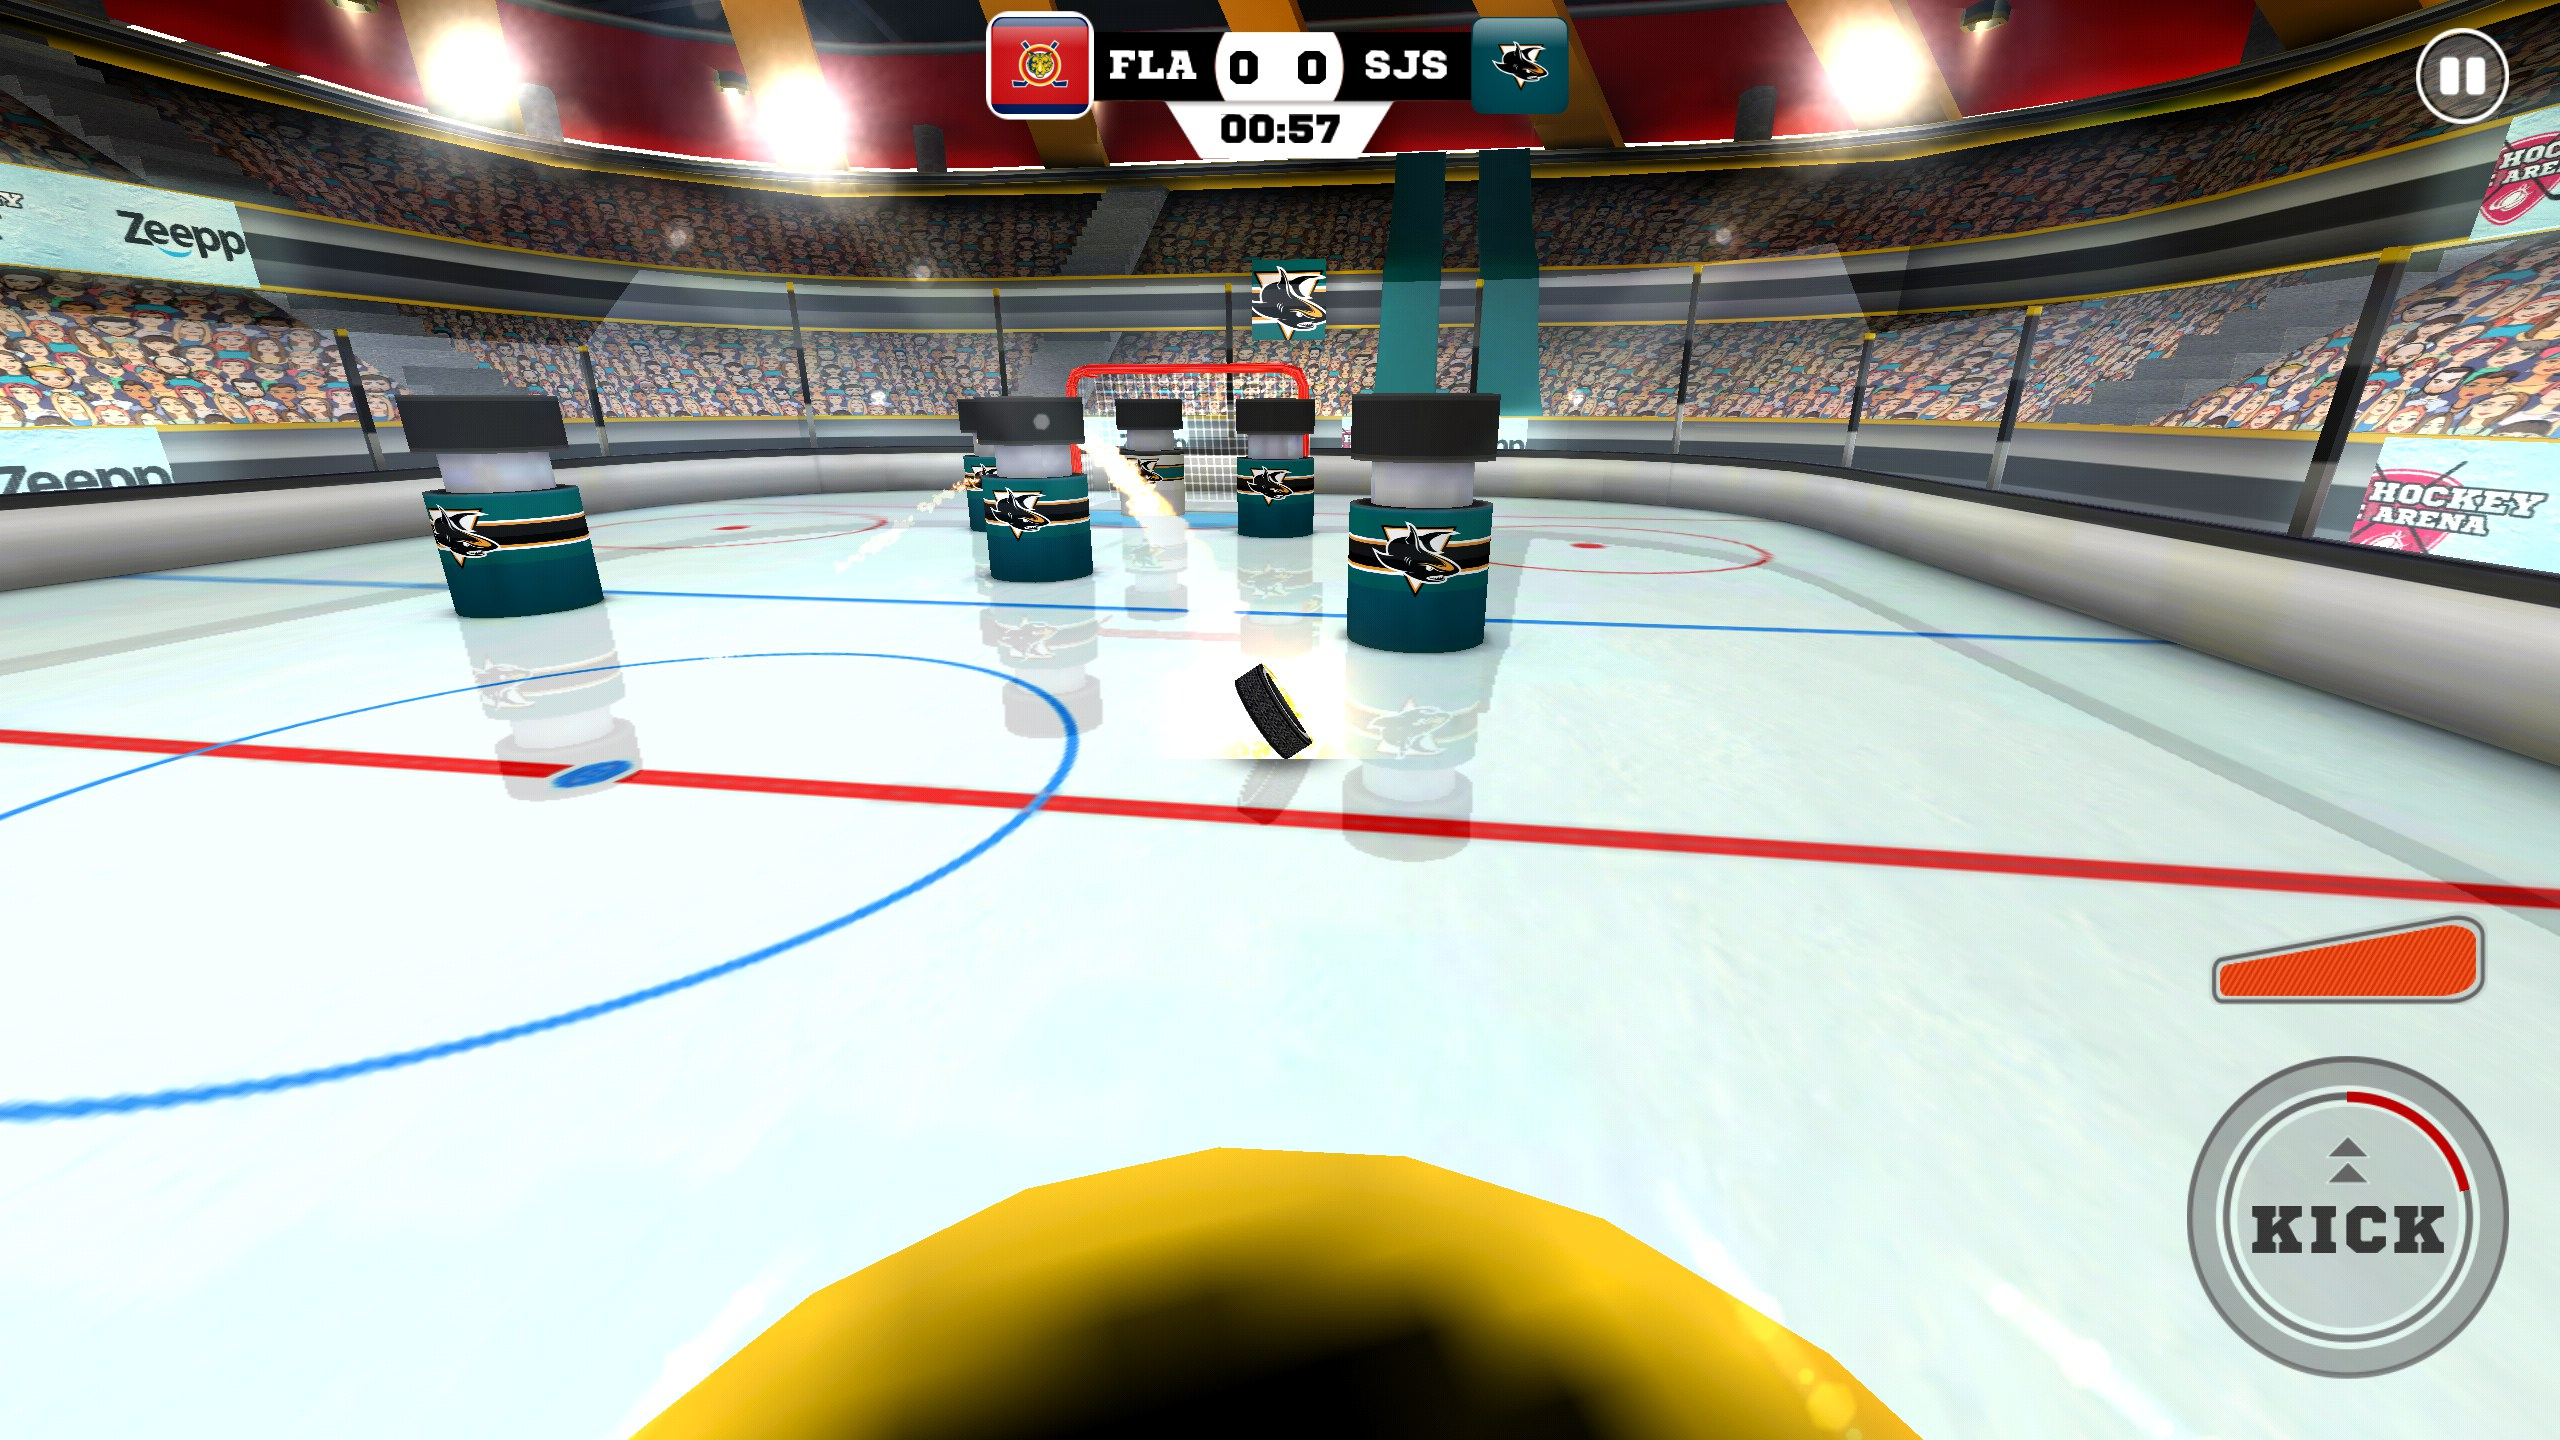 Pin Hockey Ice Arena Games For Android 2018 Free Download Pin